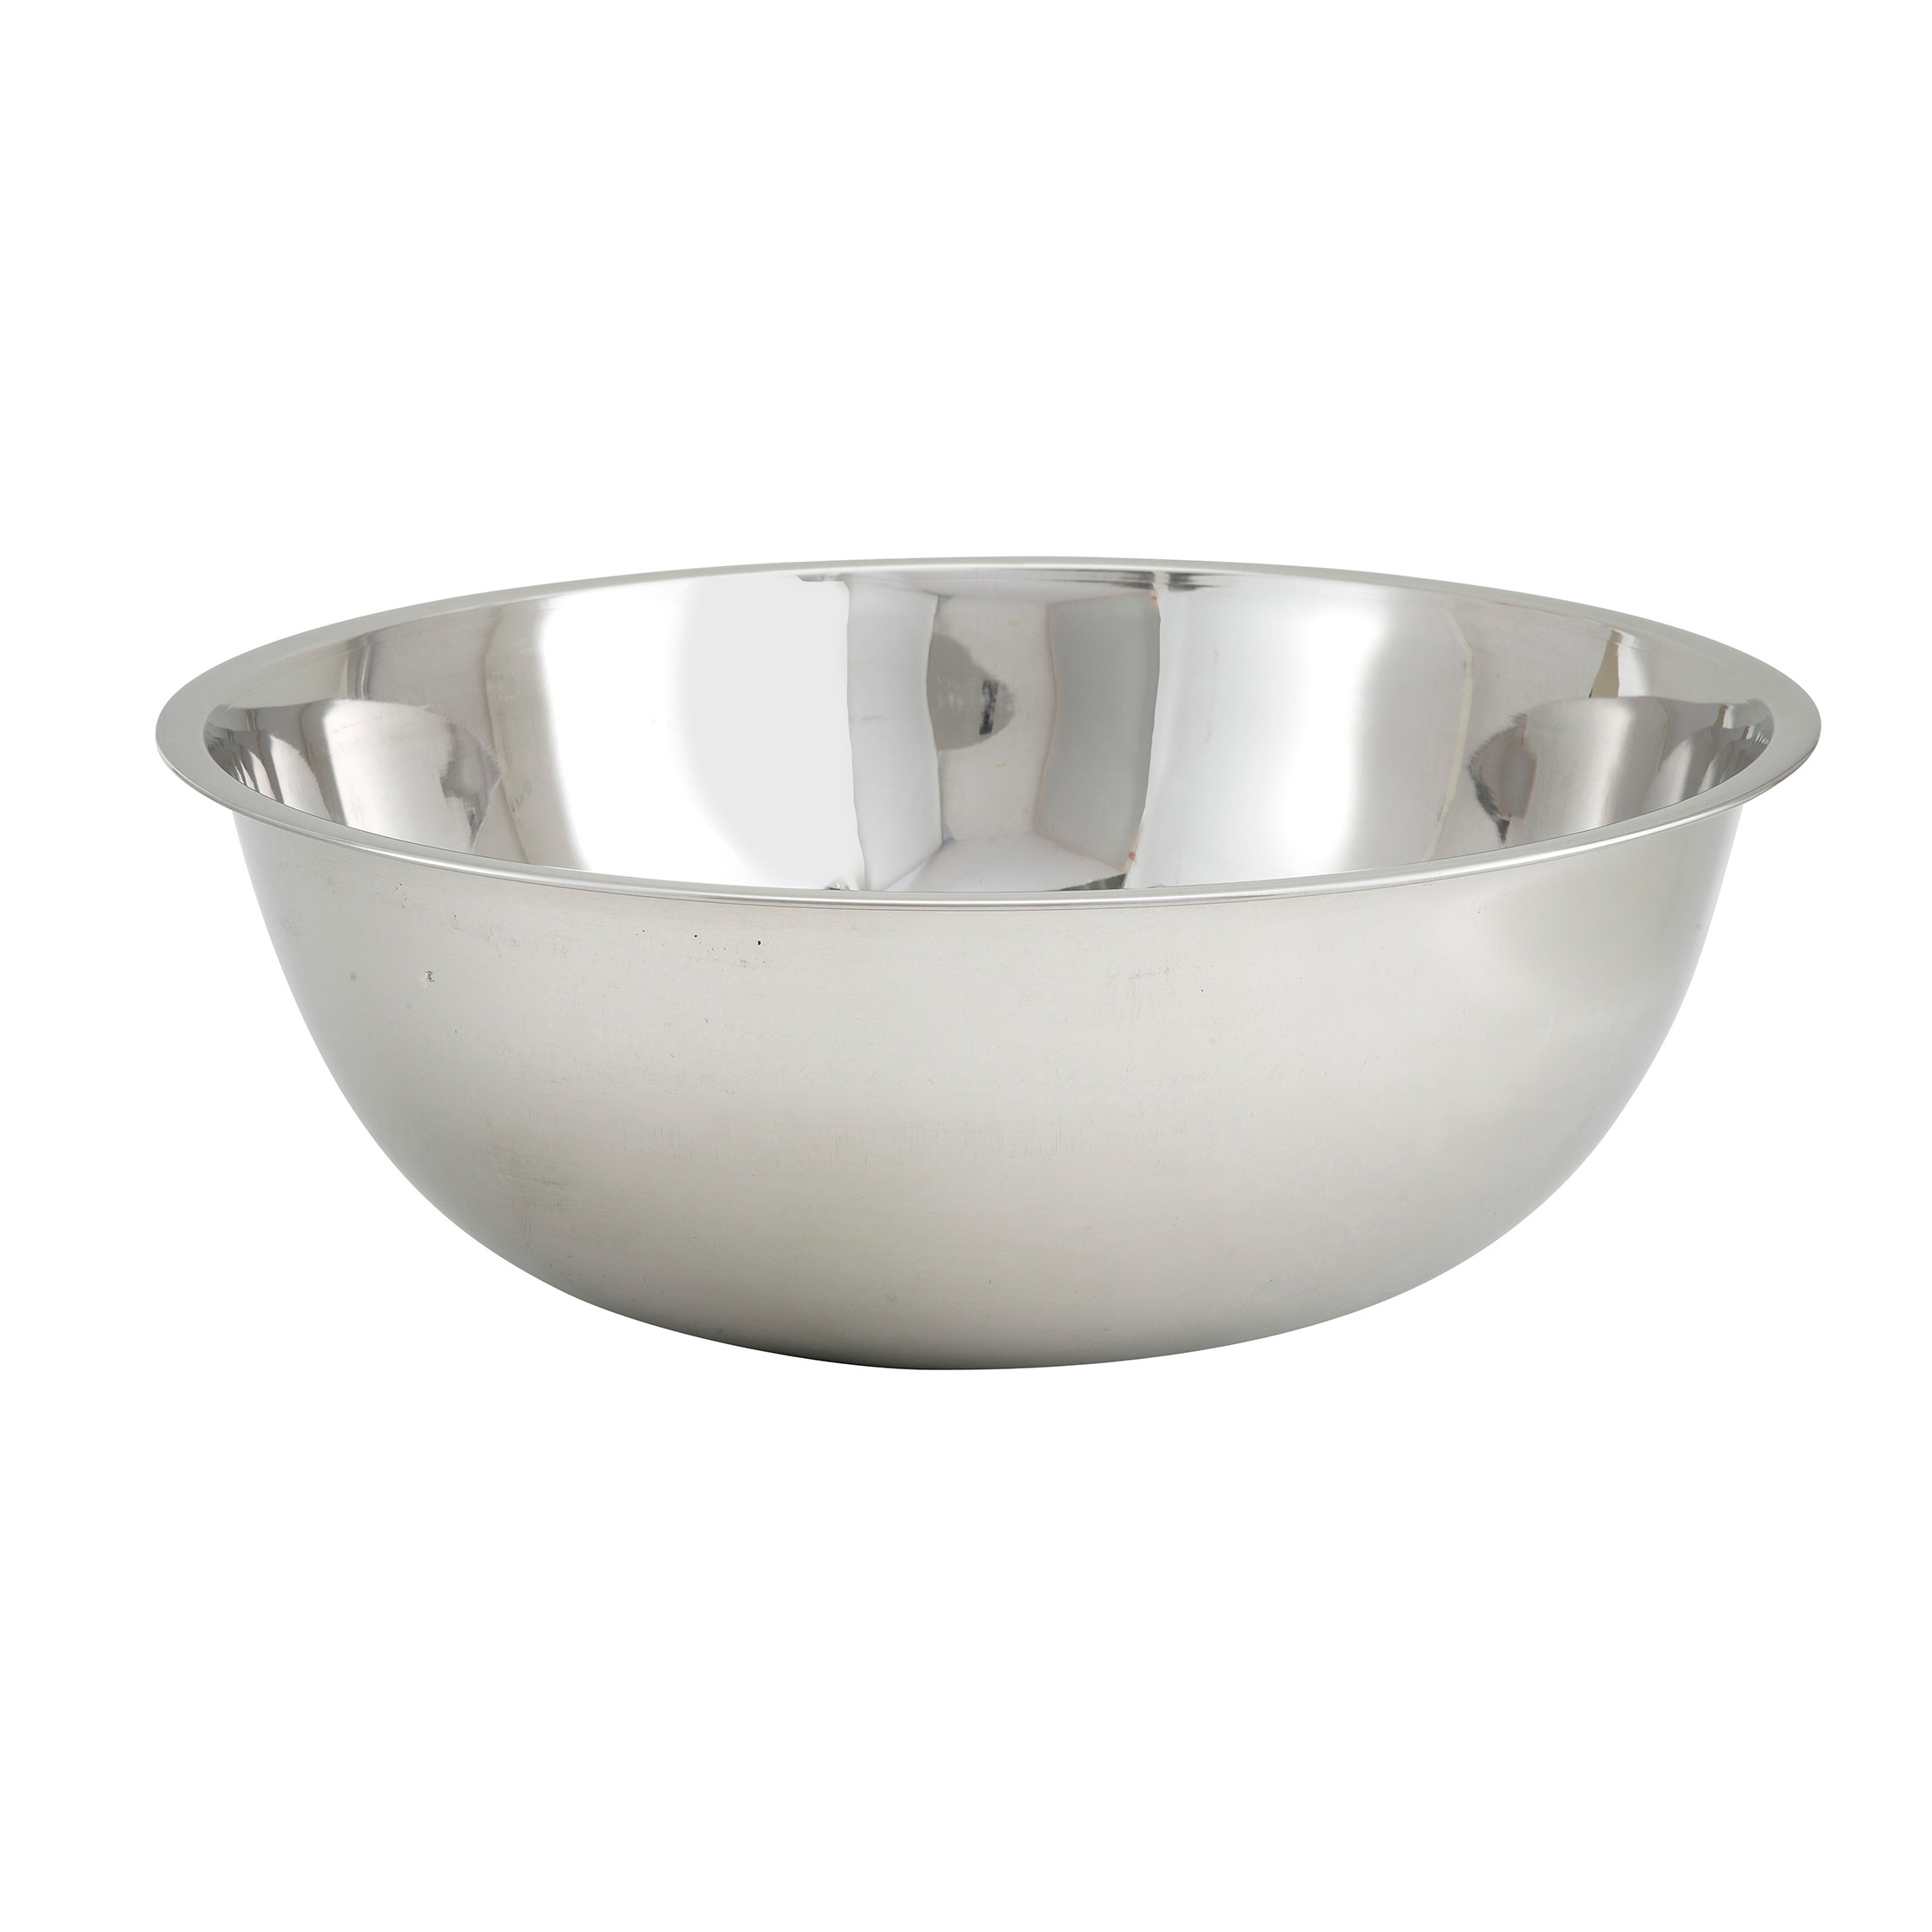 Winco MXBT-2000Q mixing bowl, metal